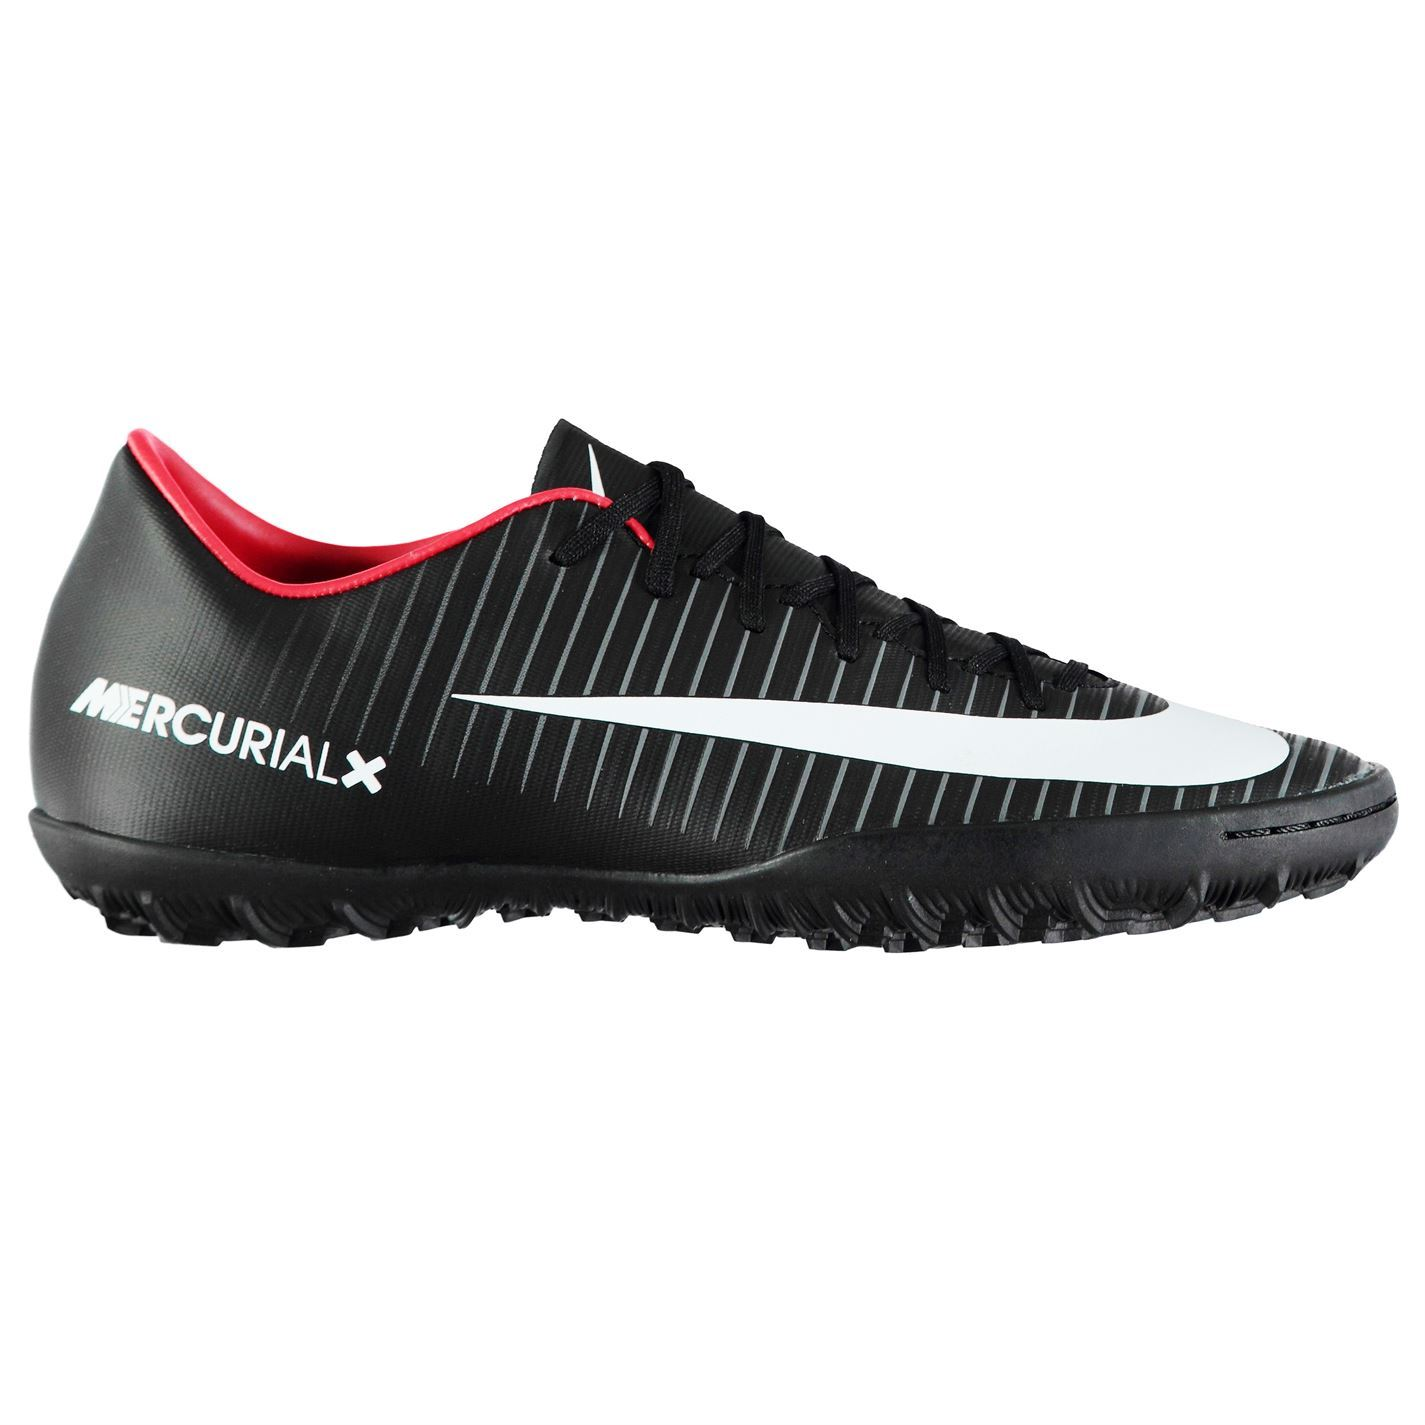 93eb79346f22 ... Nike Mercurial Victory Astro Turf Football Trainers Mens Black Soccer  Shoes ...